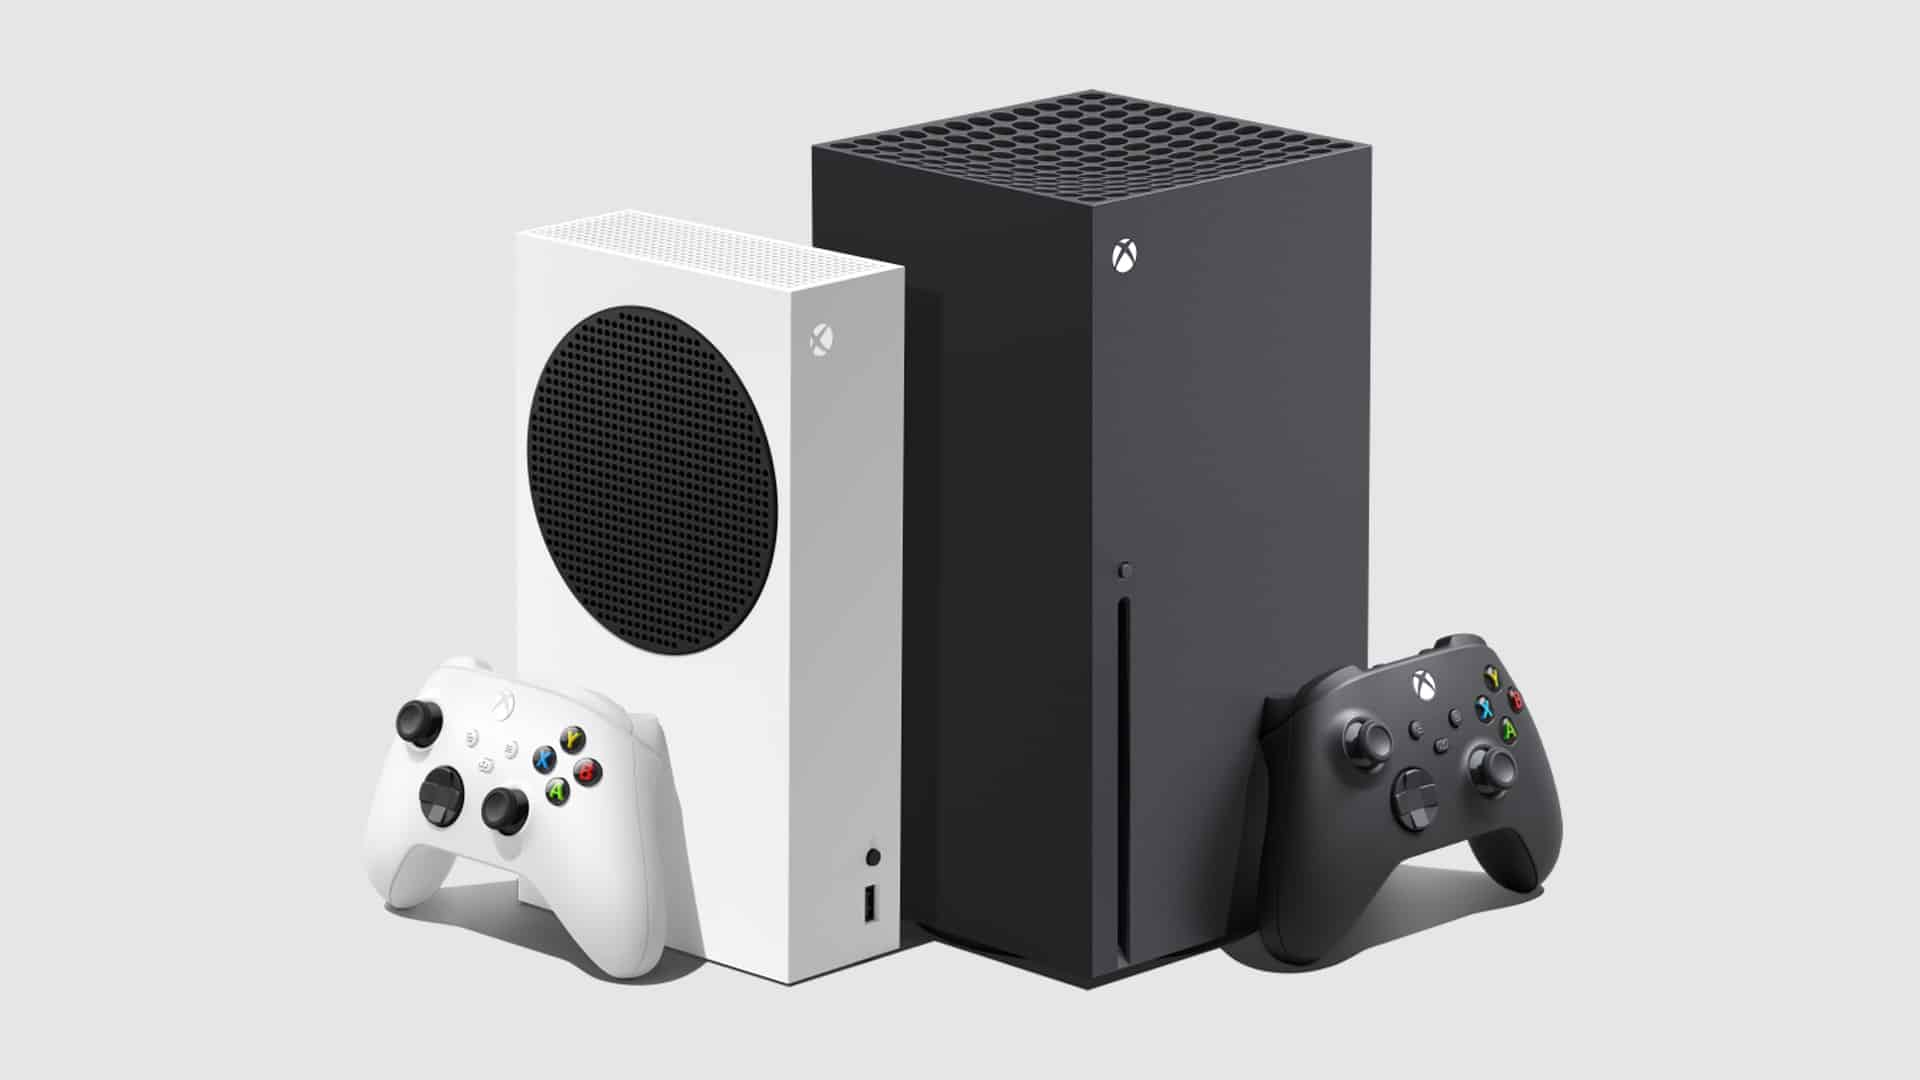 Xbox Series X S South Africa Pre-Orders